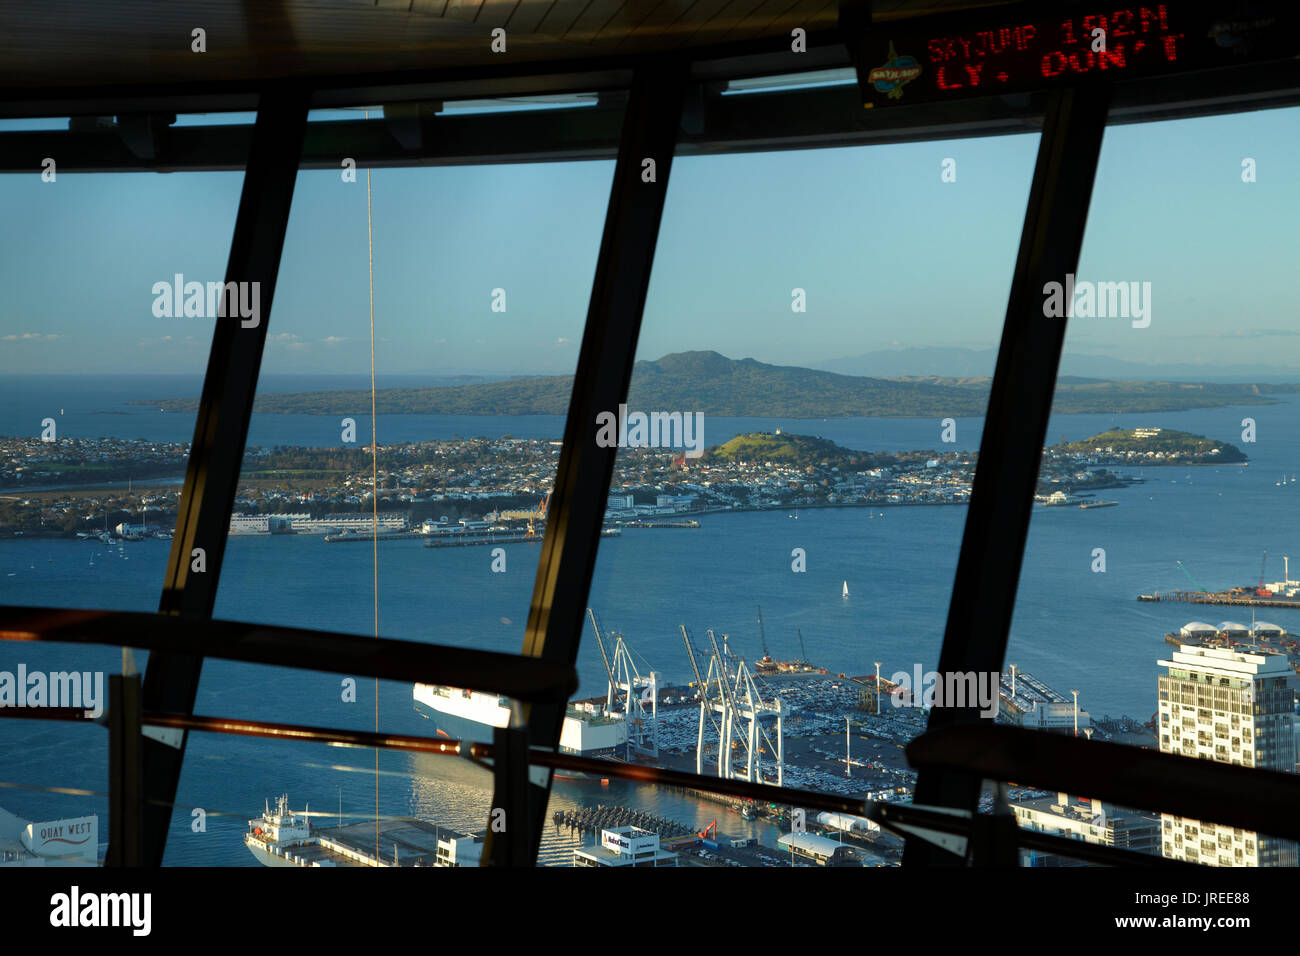 View of Waitemata Harbour from Sky Tower, Auckland, North Island, New Zealand - Stock Image